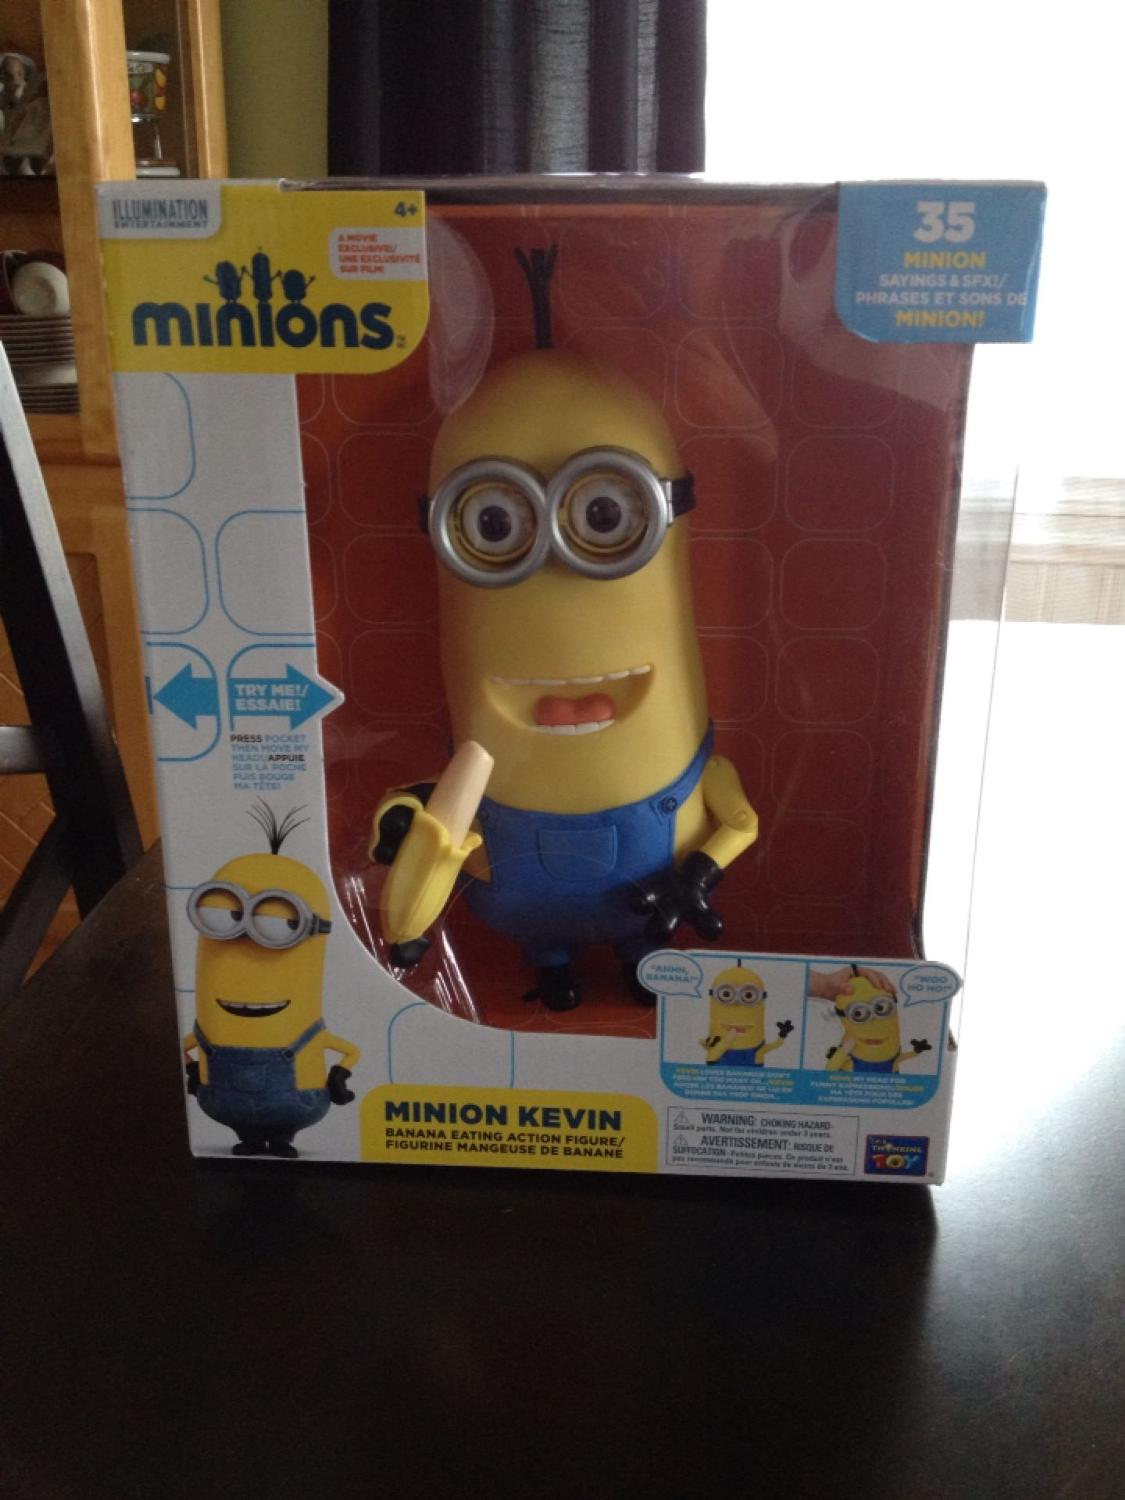 Find More Minion Kevin Banana Eating Action Figure For Sale At Up To 90 Off